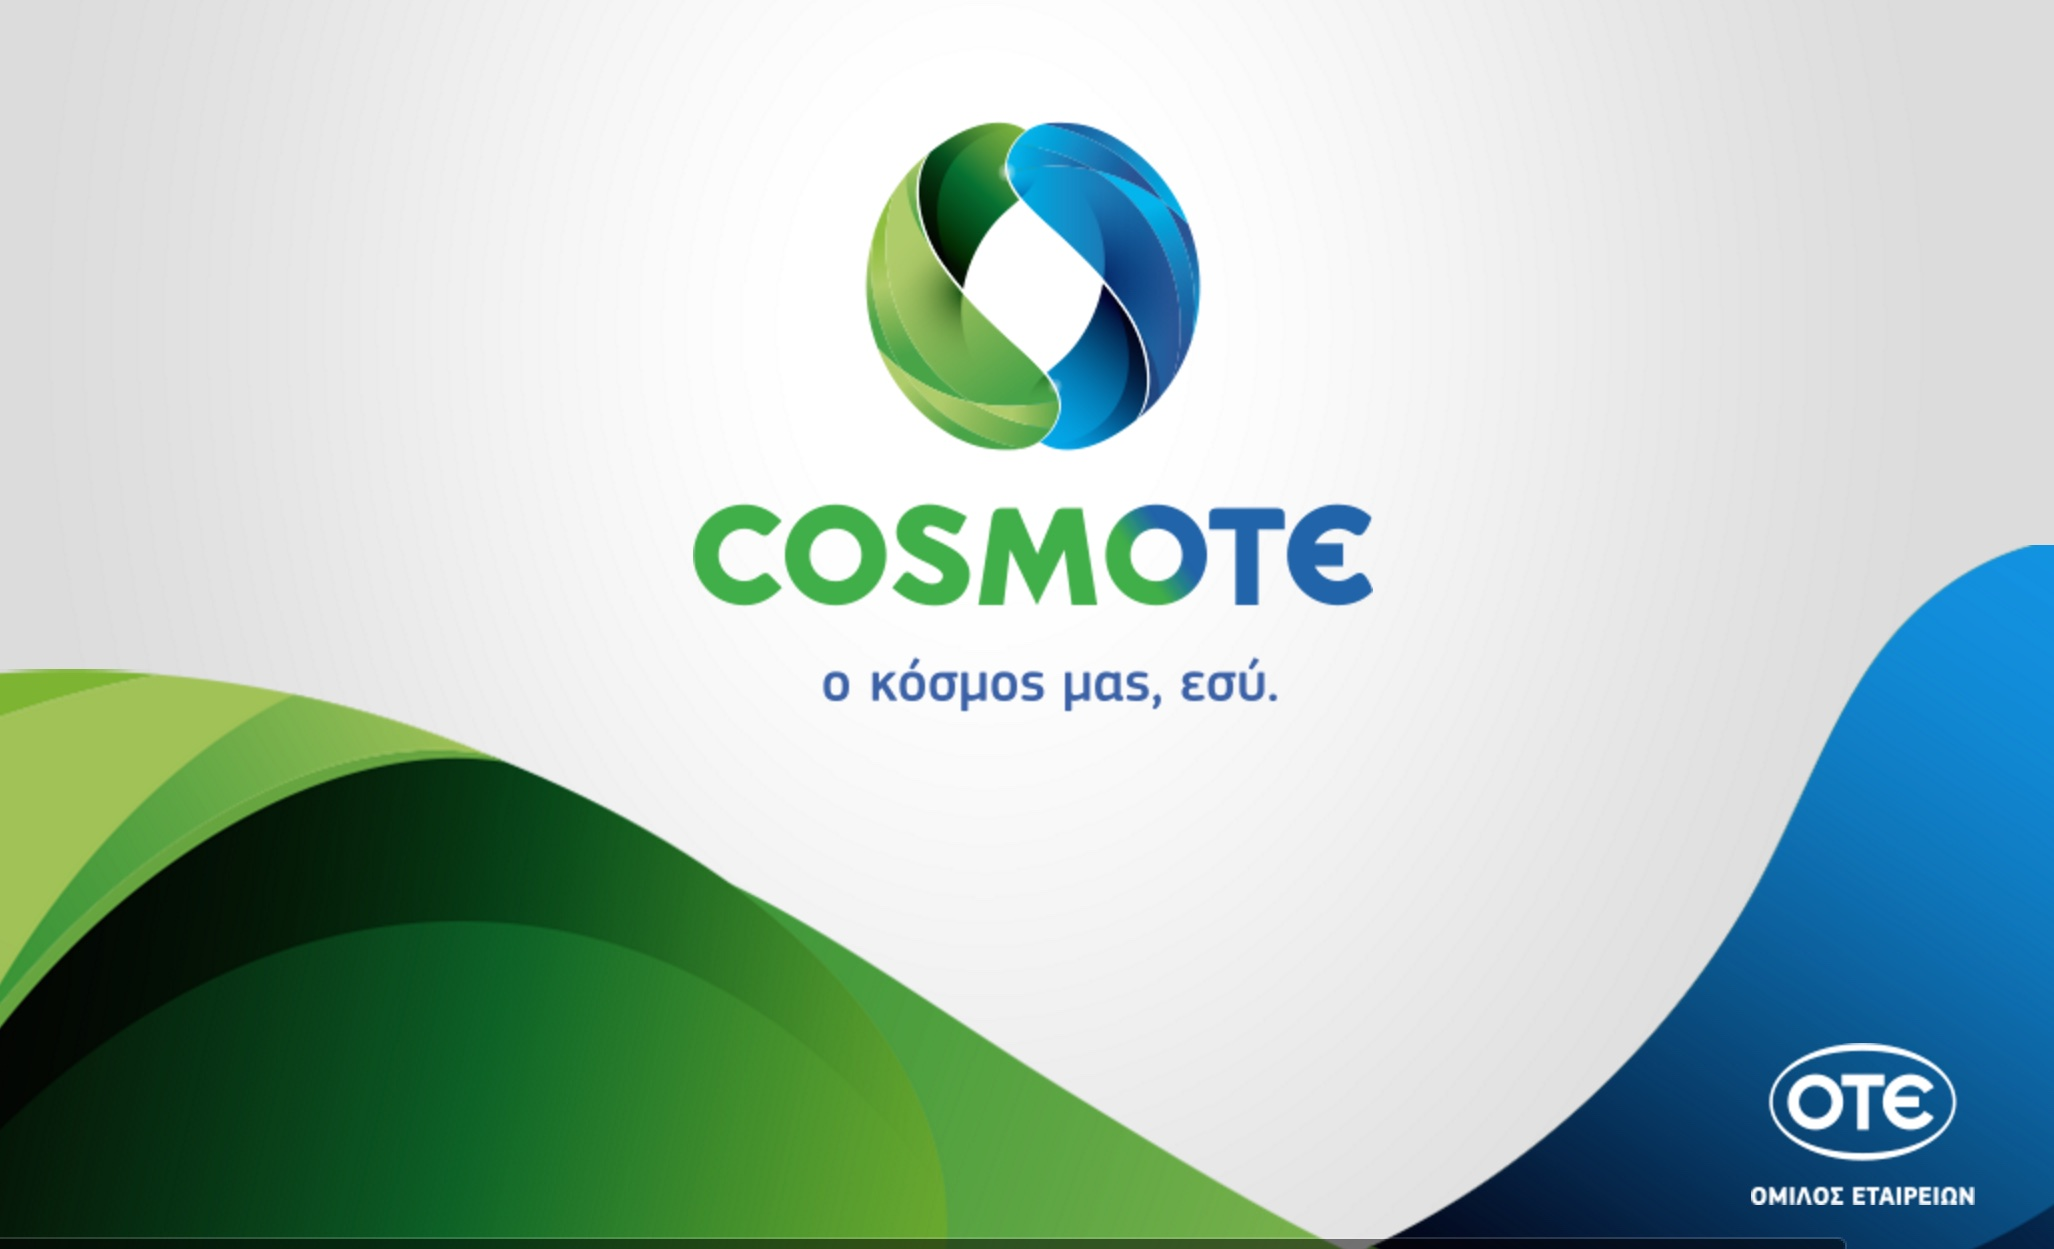 150 million euros are given to Cosmote to expand the mobile broadband network in Greece.